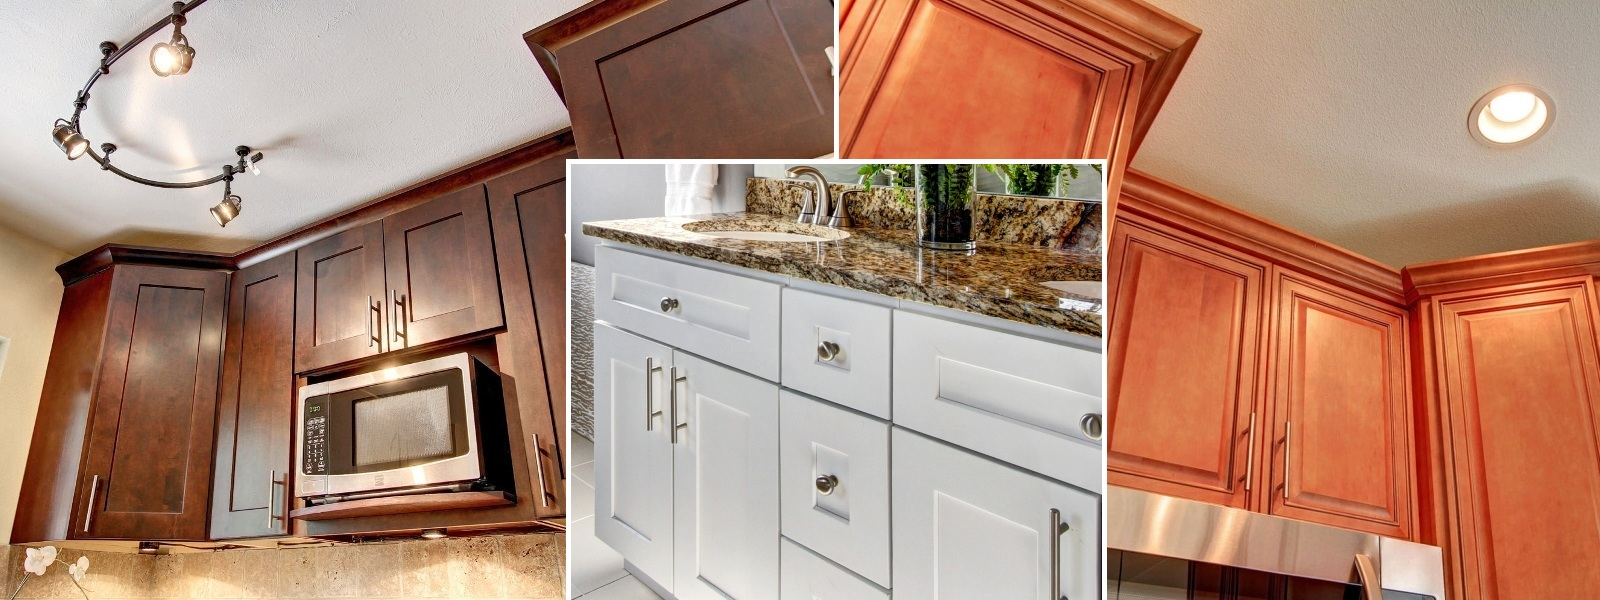 Discount Kitchen Cabinets and Countertops With Phoenix ...